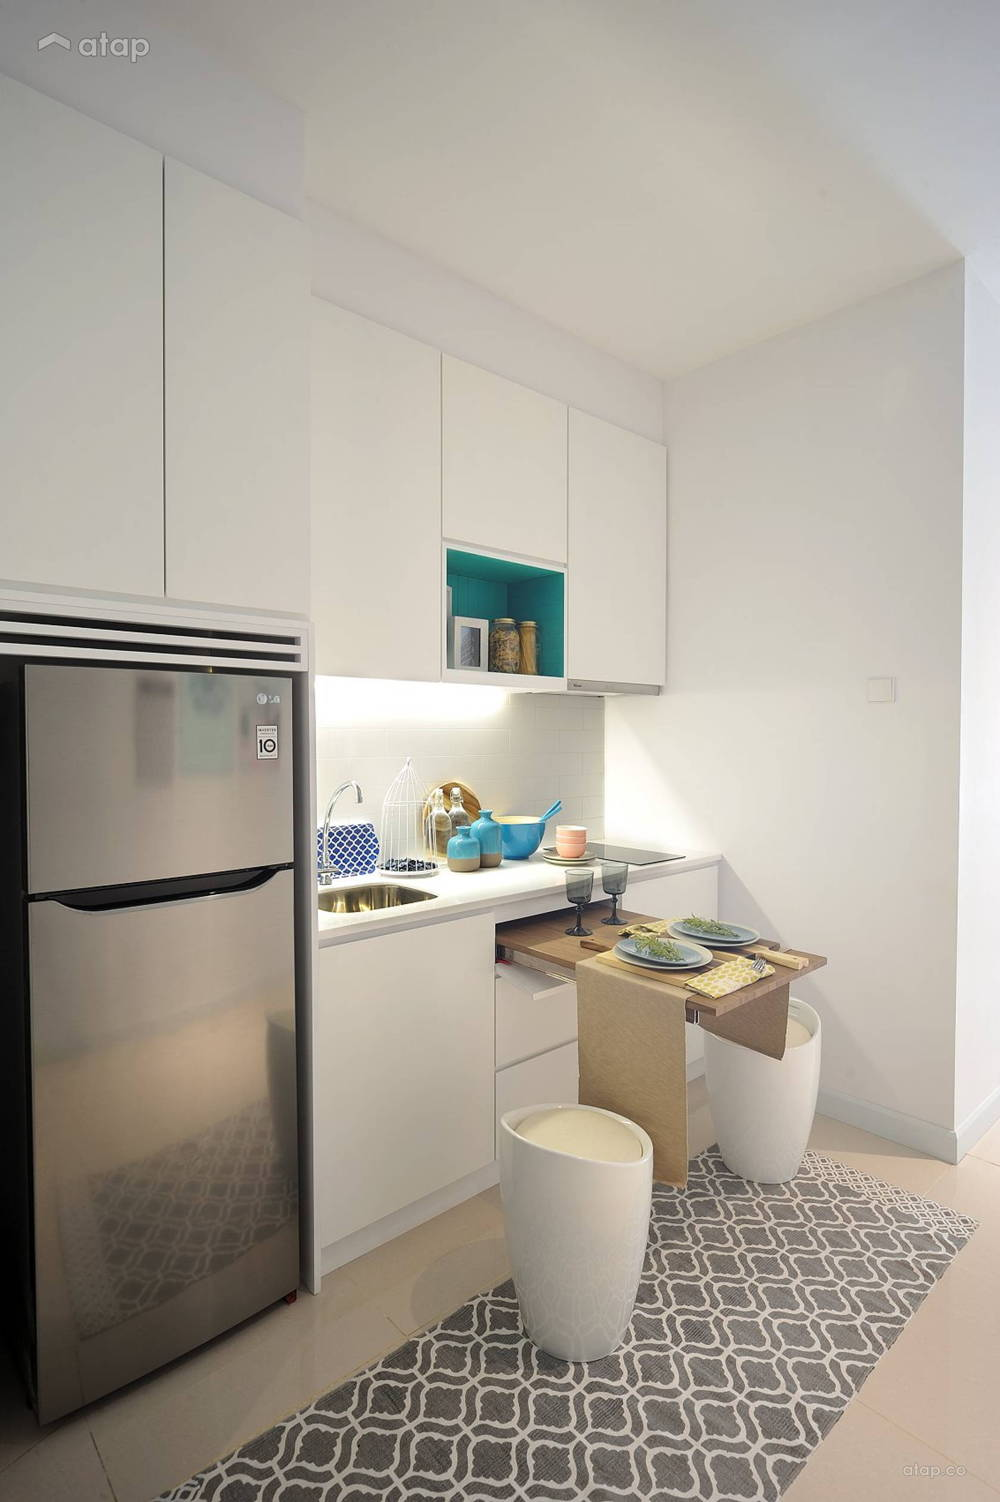 Highpark suites kitchenette